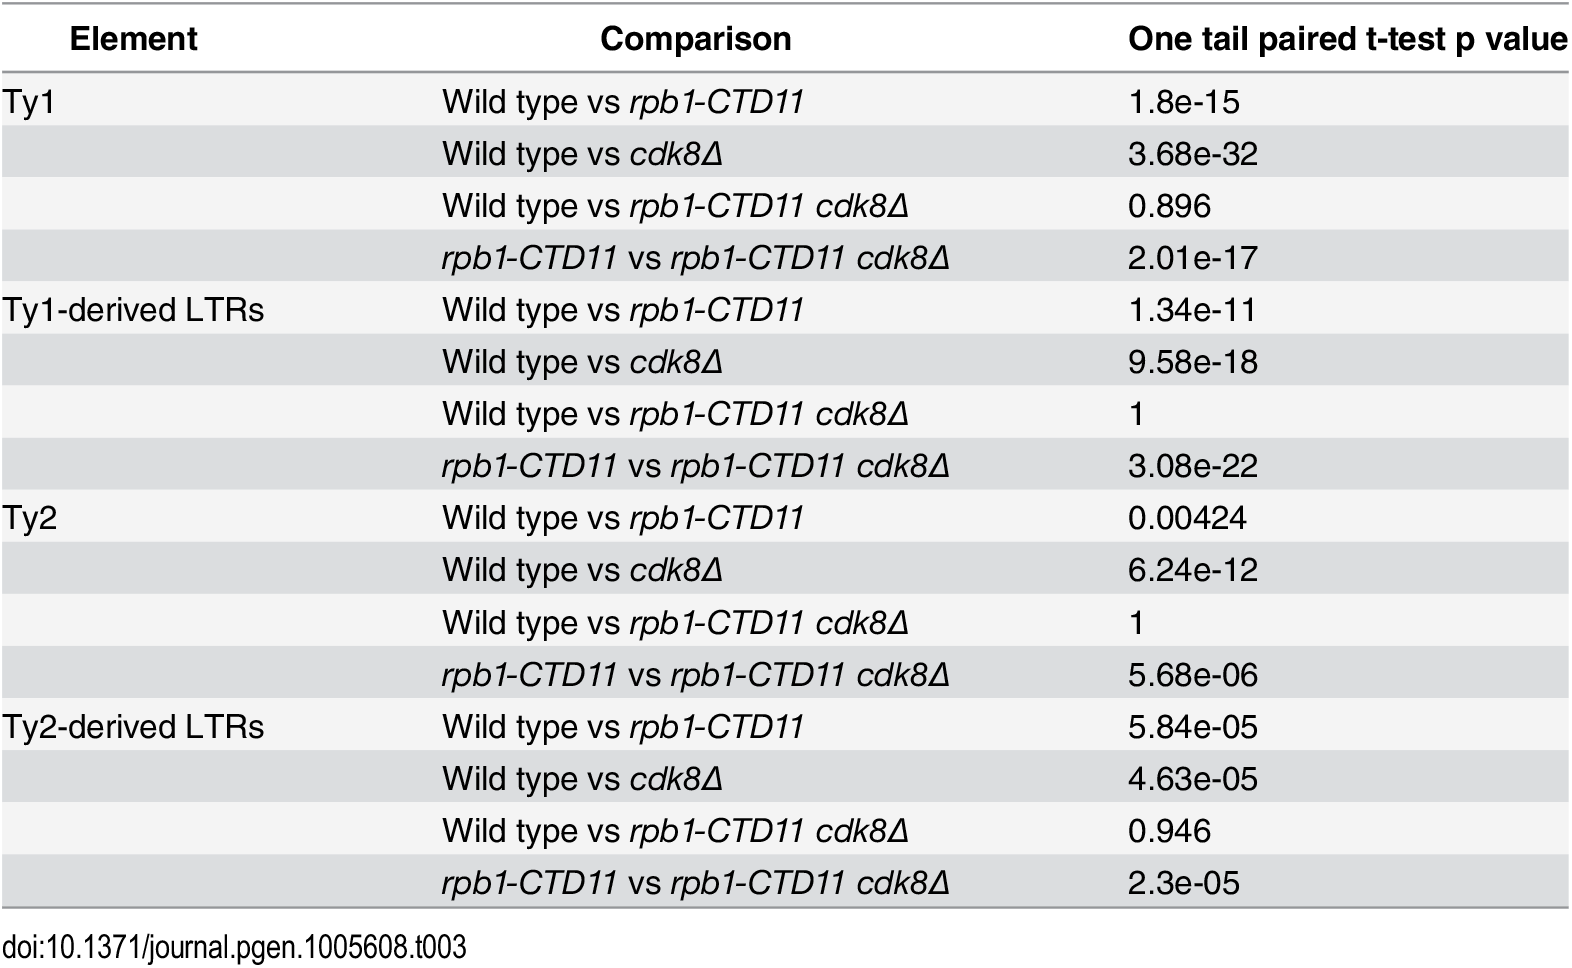 Paired t-test p values comparing the levels of RNAPII at Ty1 and Ty2 retrotransposons and Ty-derived LTRs.